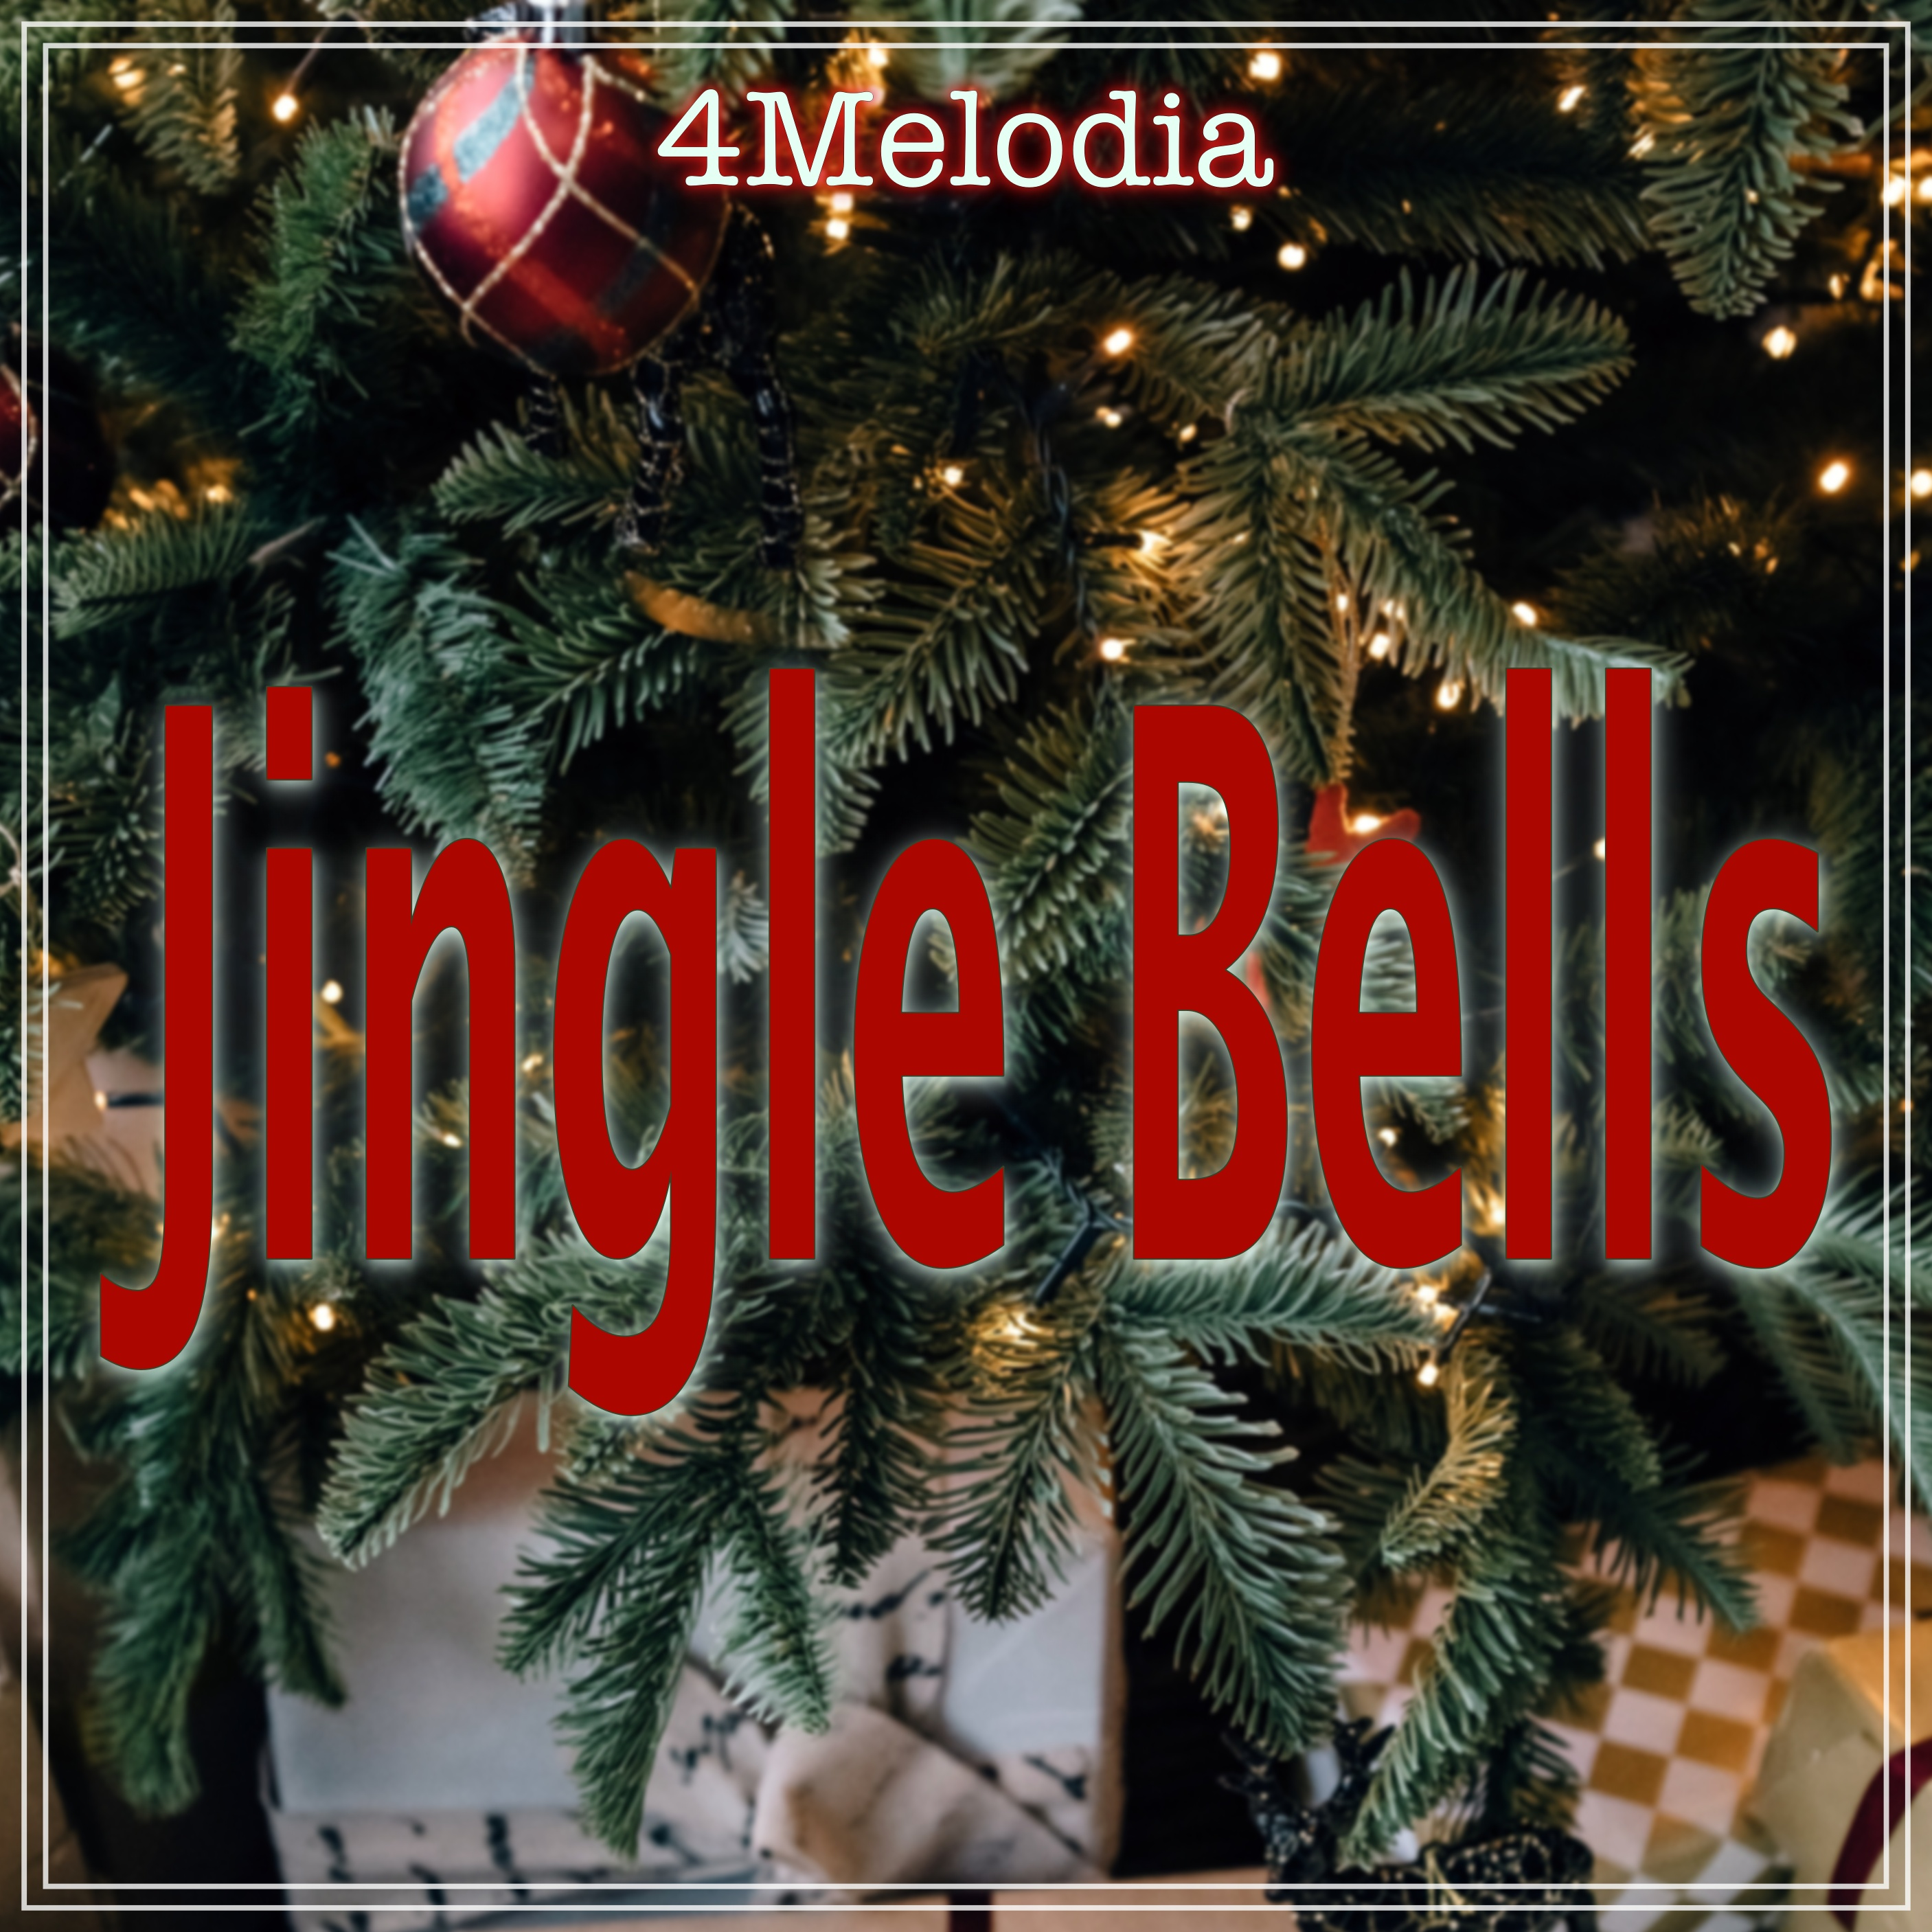 Jingle Bells - 4Melodia